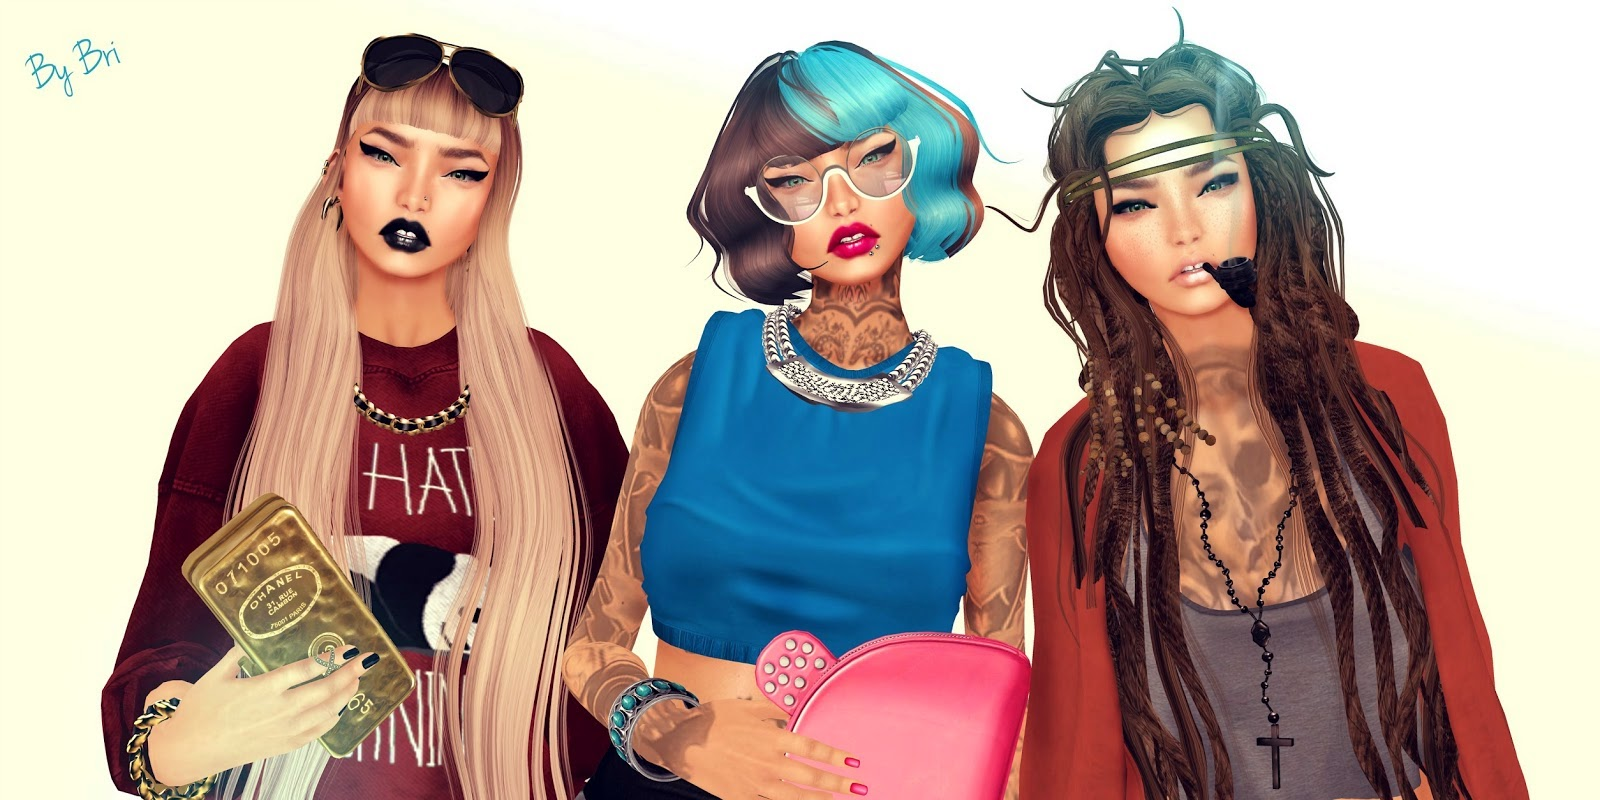 a5aa1ee82fc1 FEED -Second Life- FEED  Great blog  ❀Freaky Princess Style❀